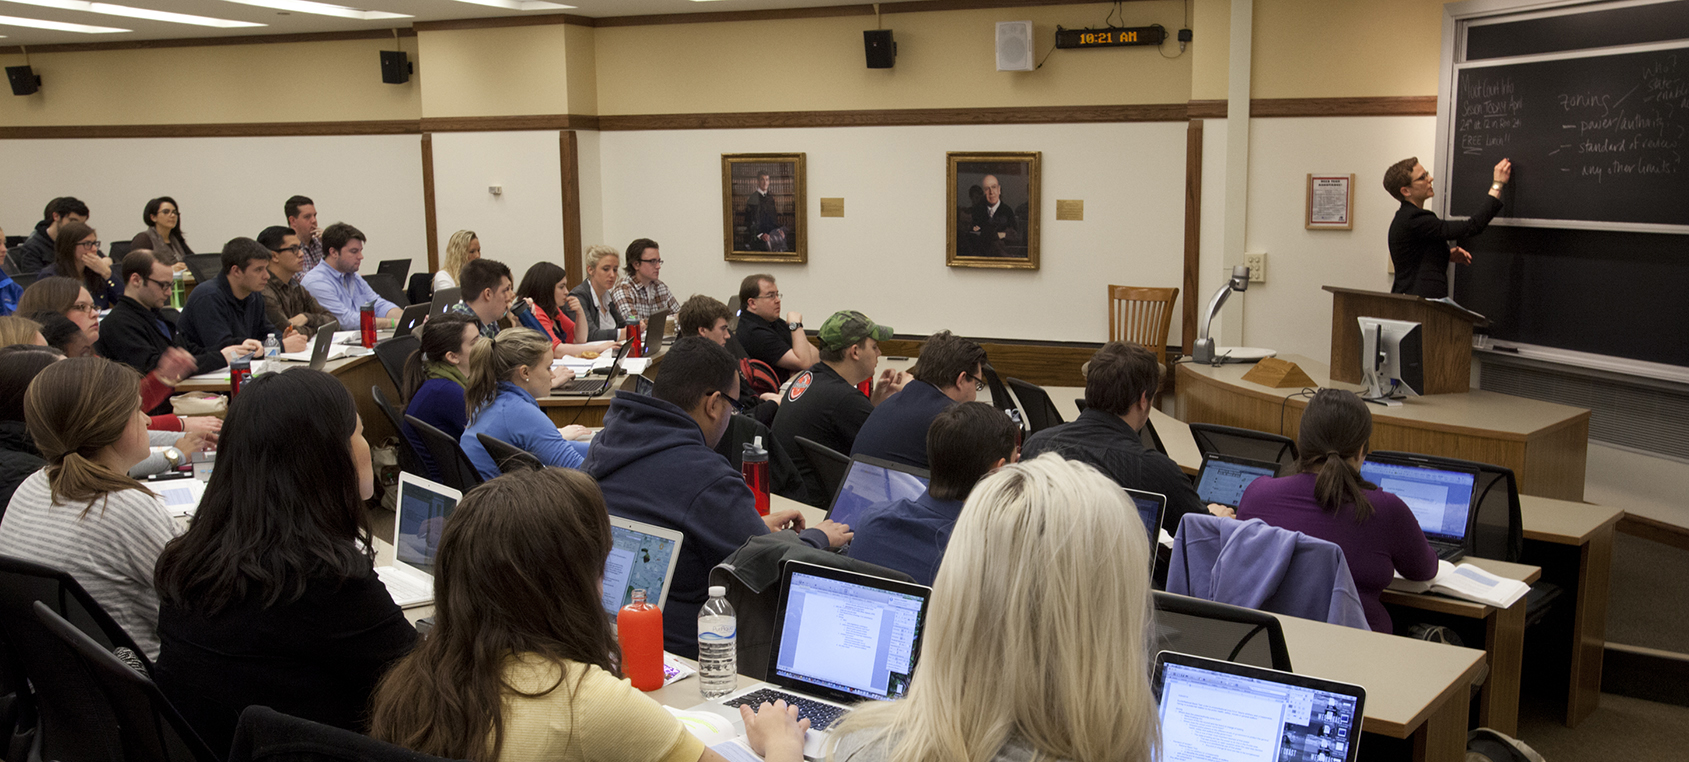 Whether students access the Wi-Fi network for social purposes or academic purposes, a stable Wi-Fi connection at educational institutions is a service that most students rely on. - DePaul University - College of Law